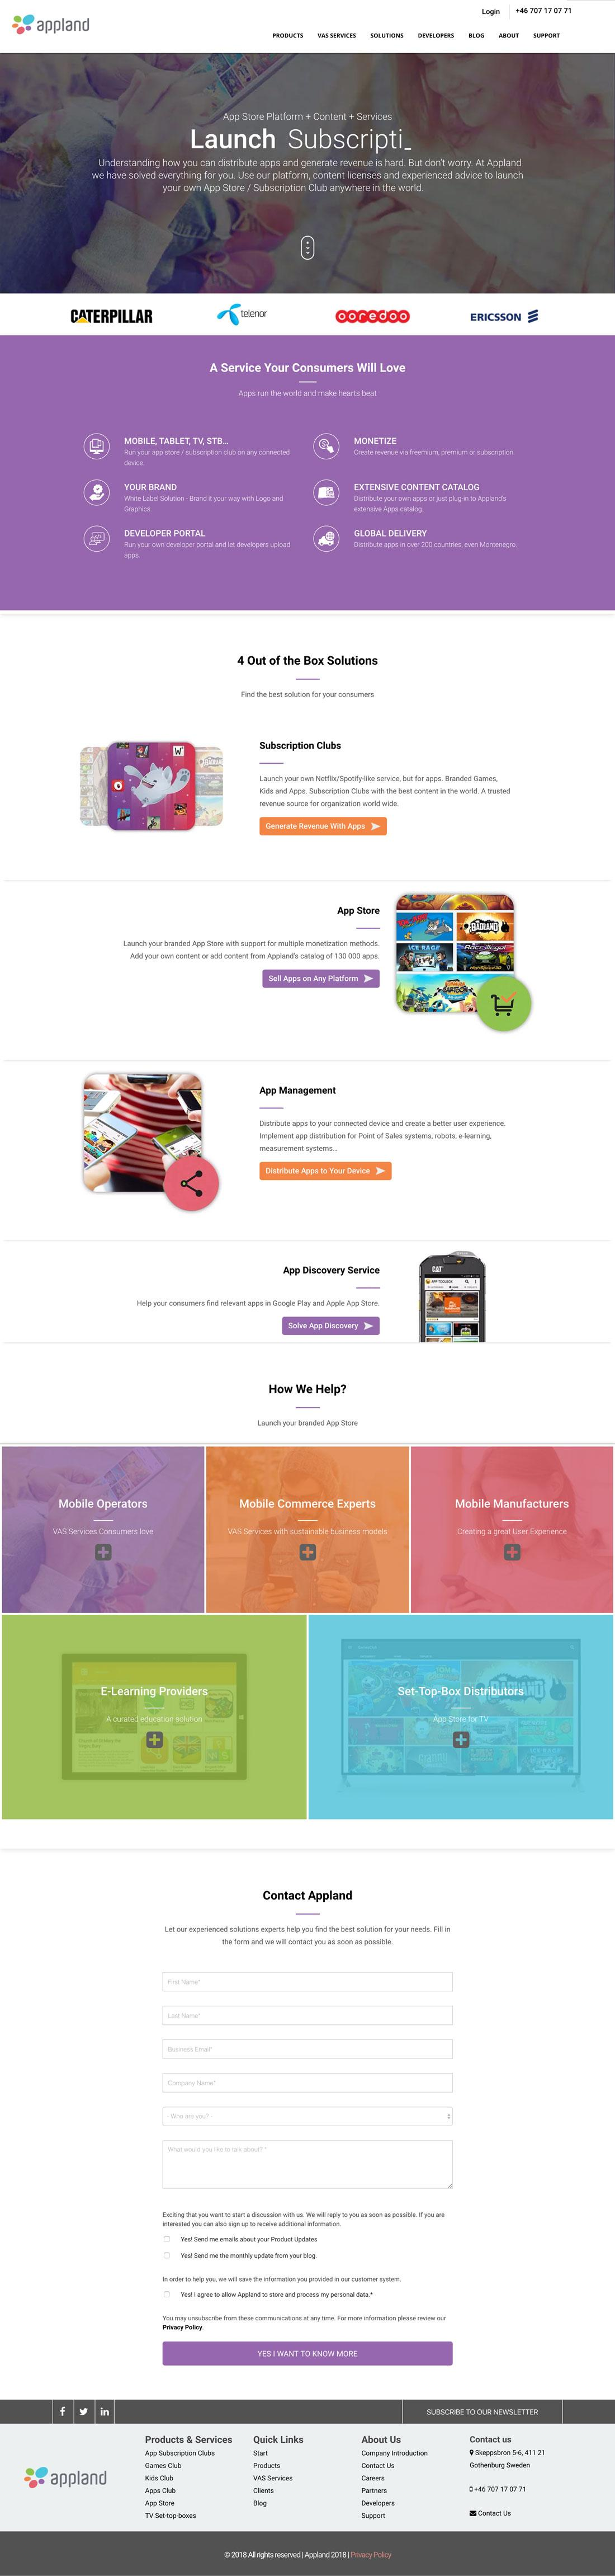 Image showing website designing and development process executed for inbound mantra client appland